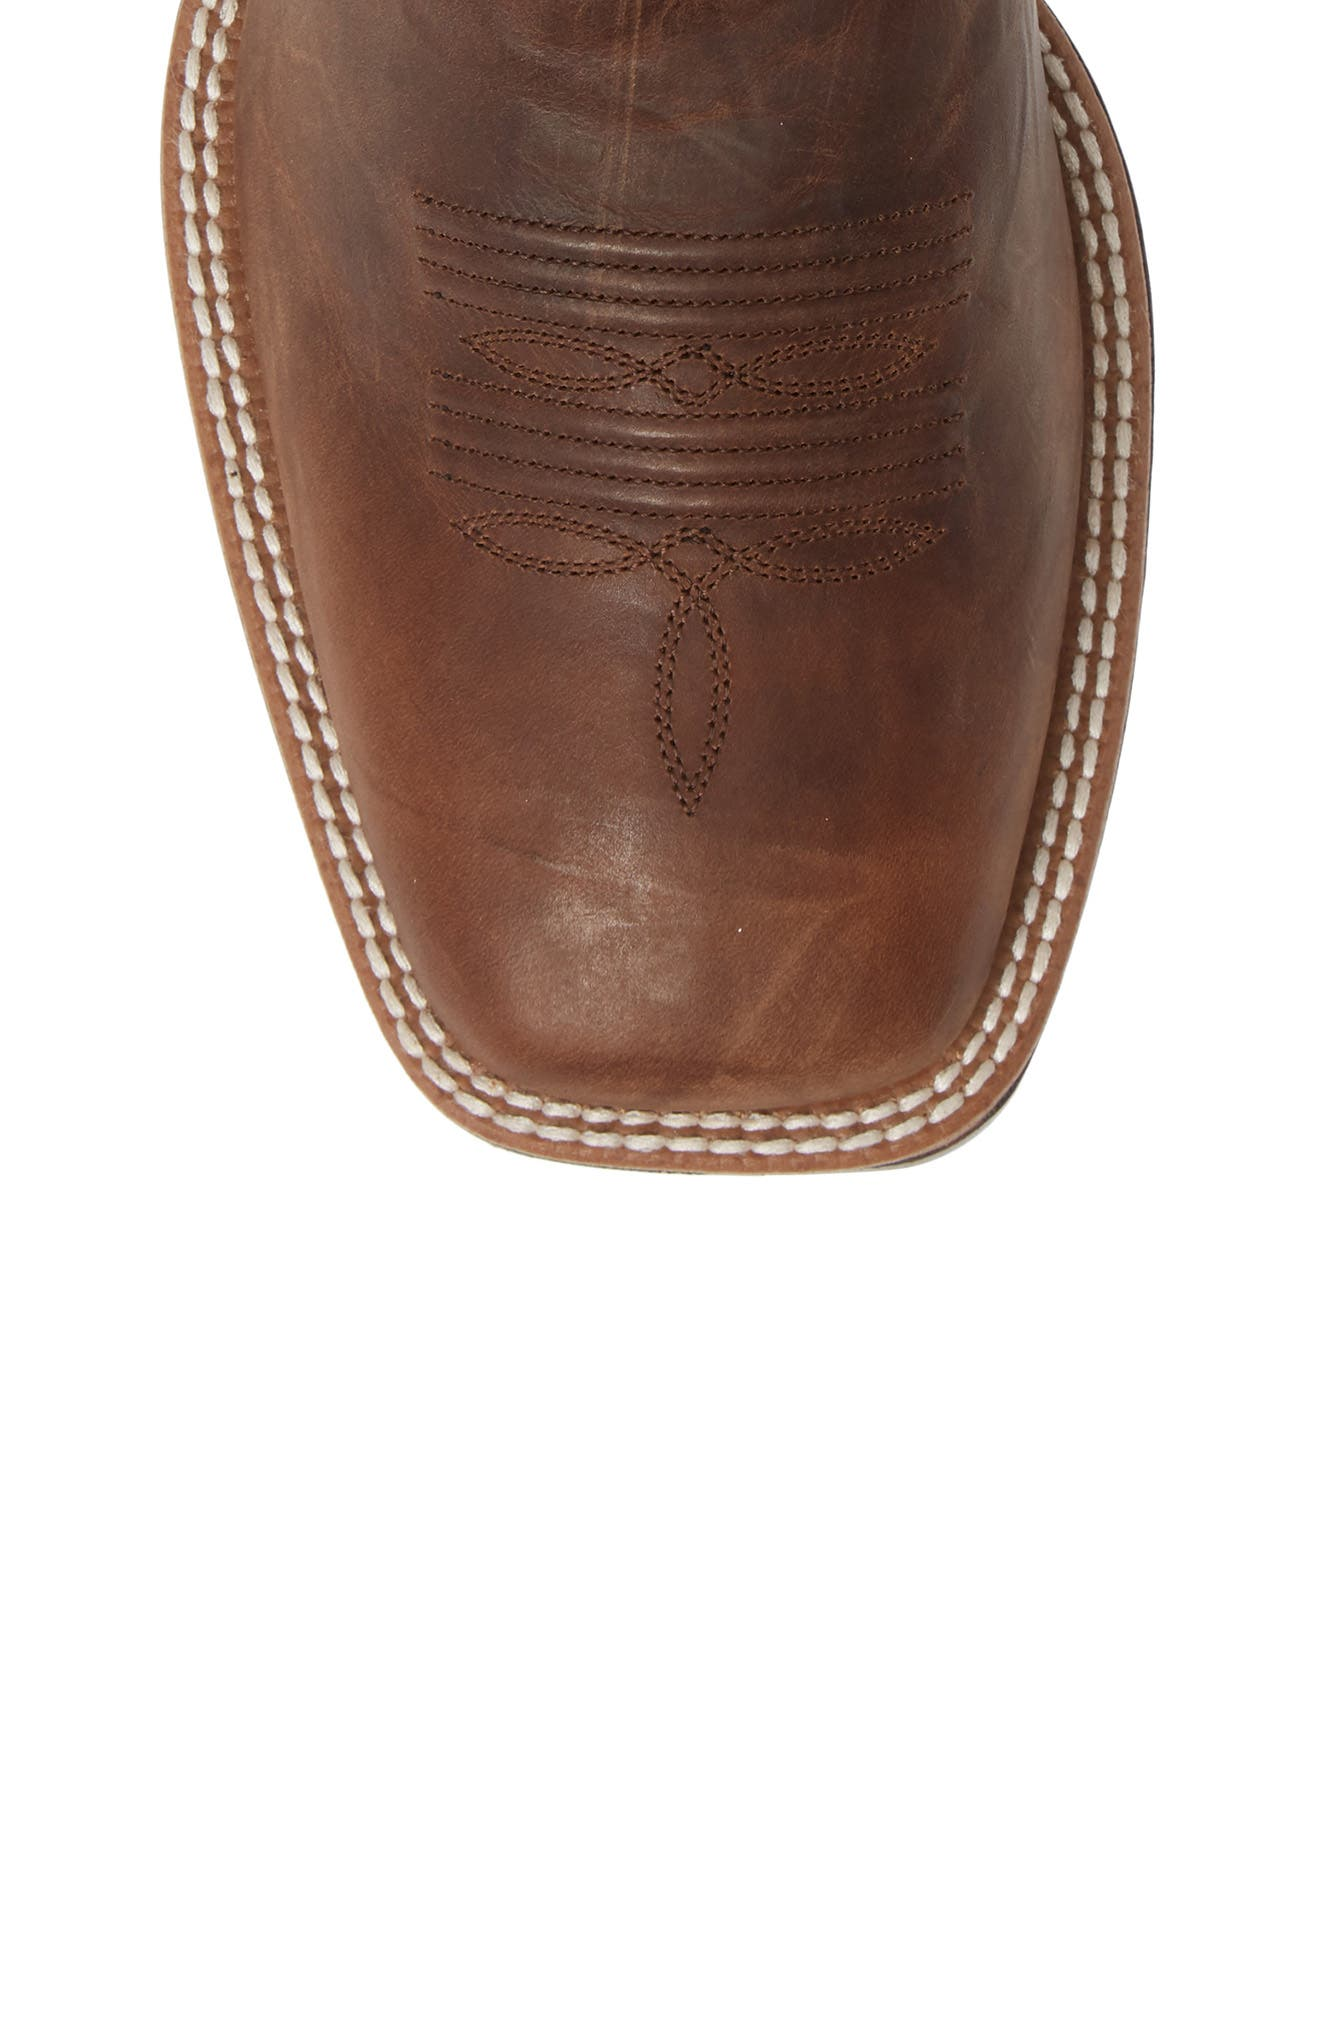 ARIAT, Plano Cowboy Boot, Alternate thumbnail 5, color, TANNIN/ TACK ROM LEATHER